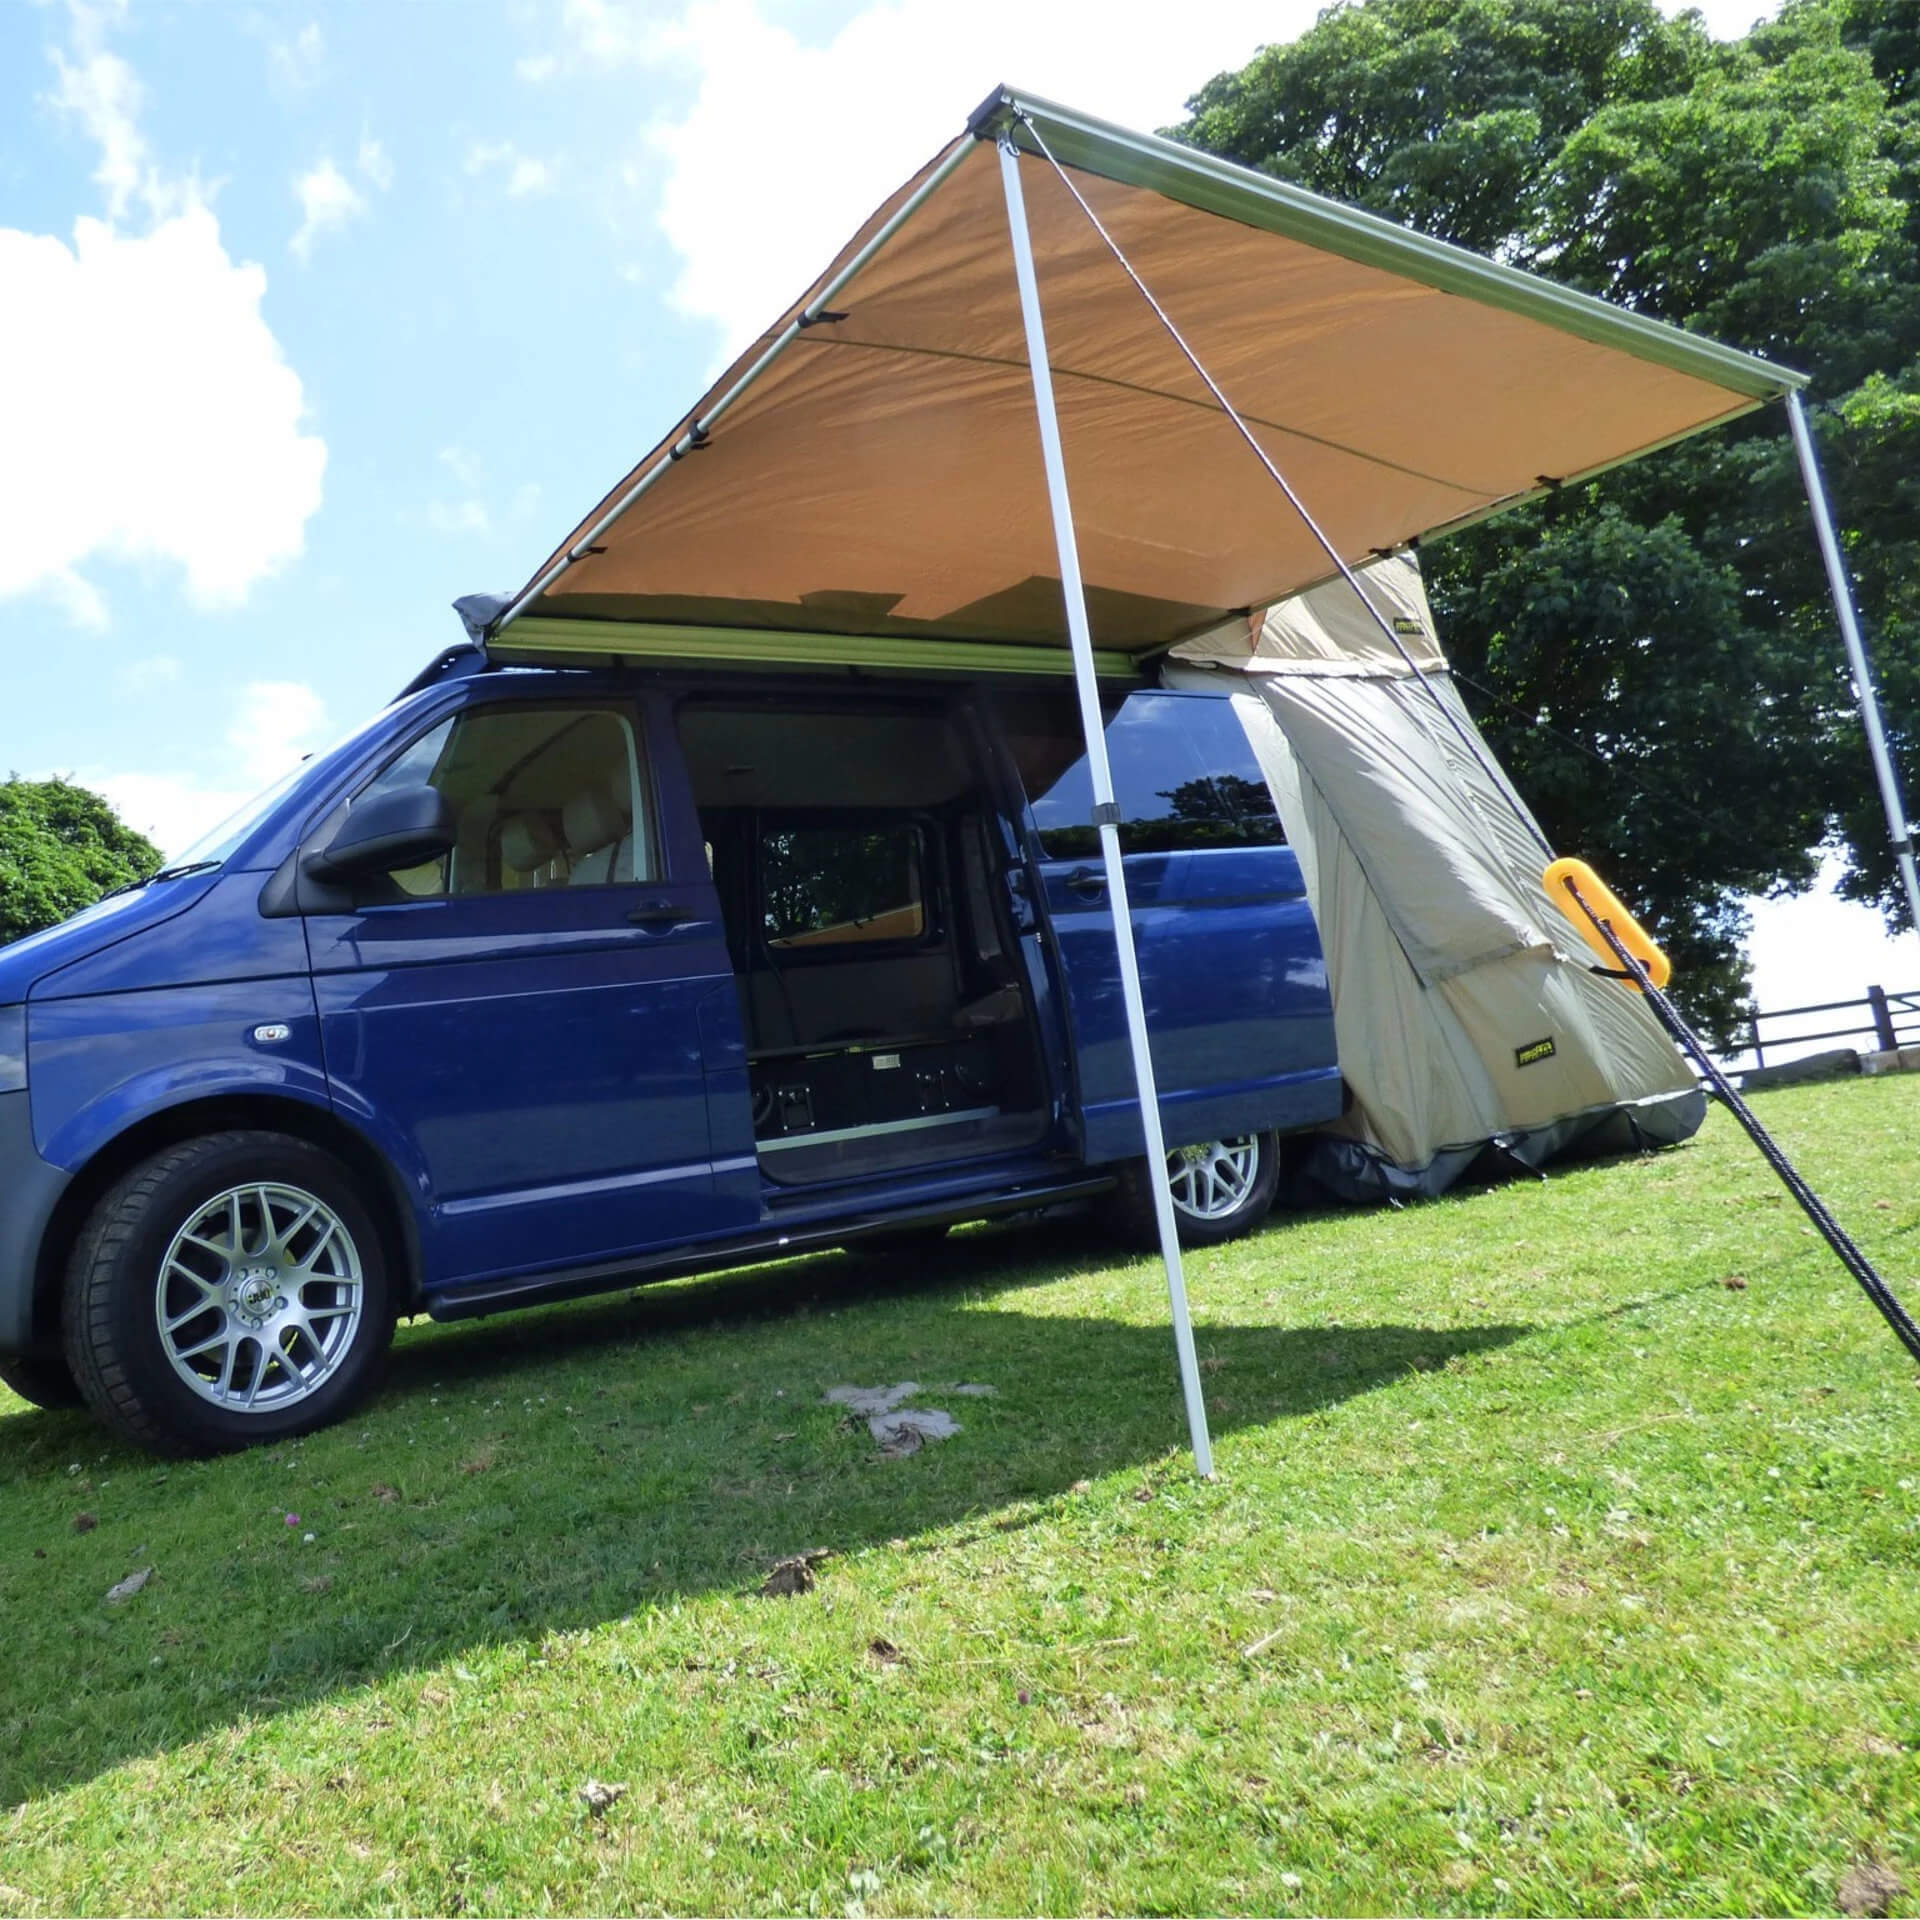 Direct4x4 Overland Expedition Vehicle Camping Side Awnings